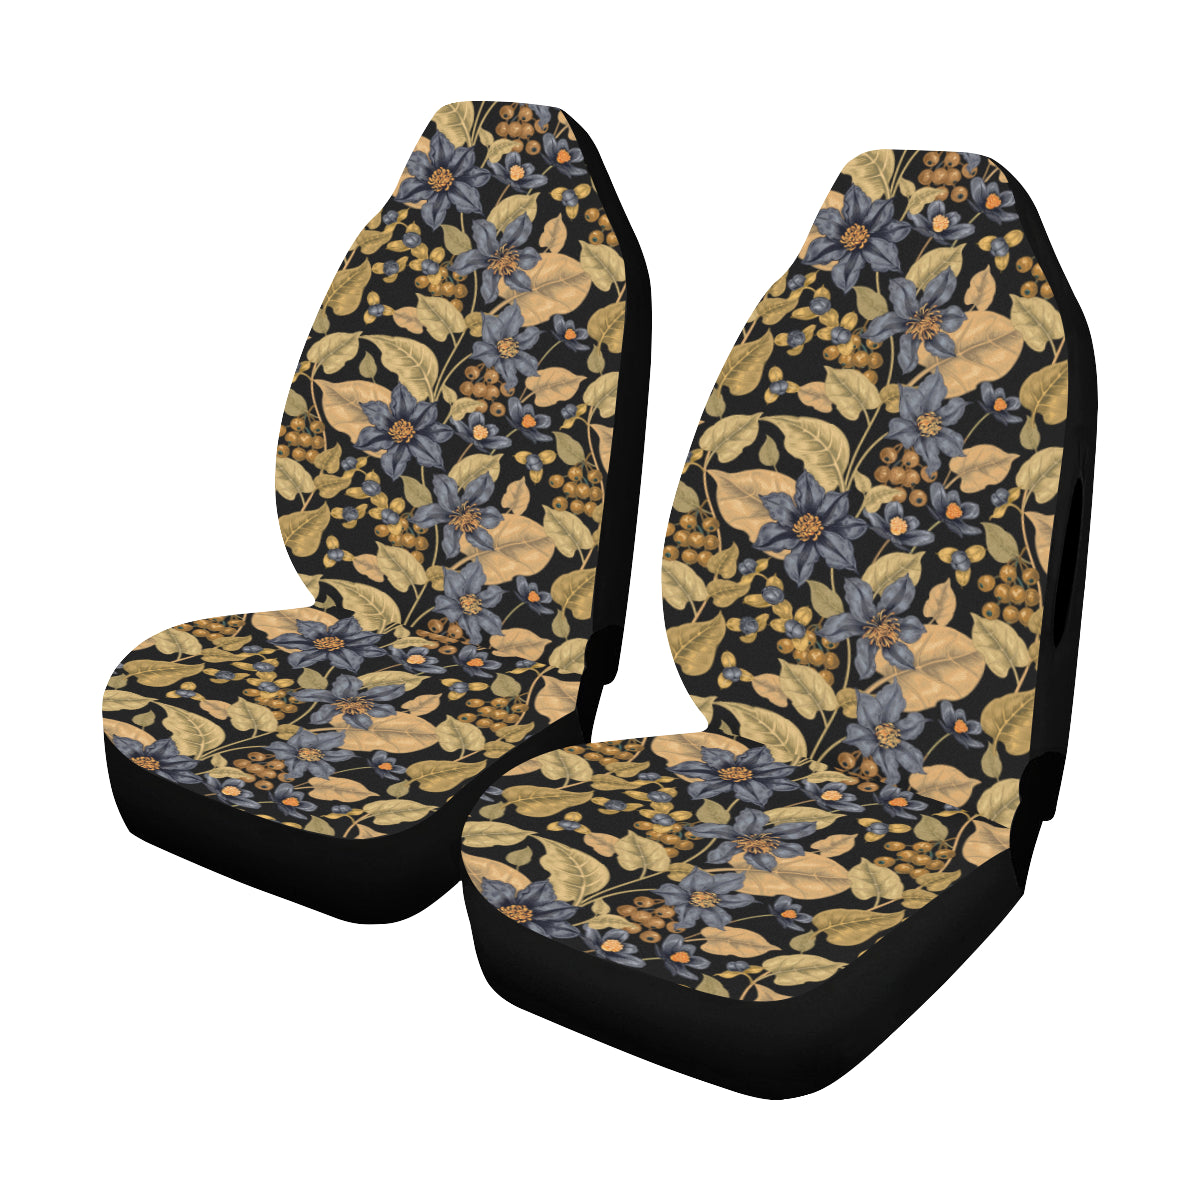 Dark Flower - Car Seat Cover (Set of 2)